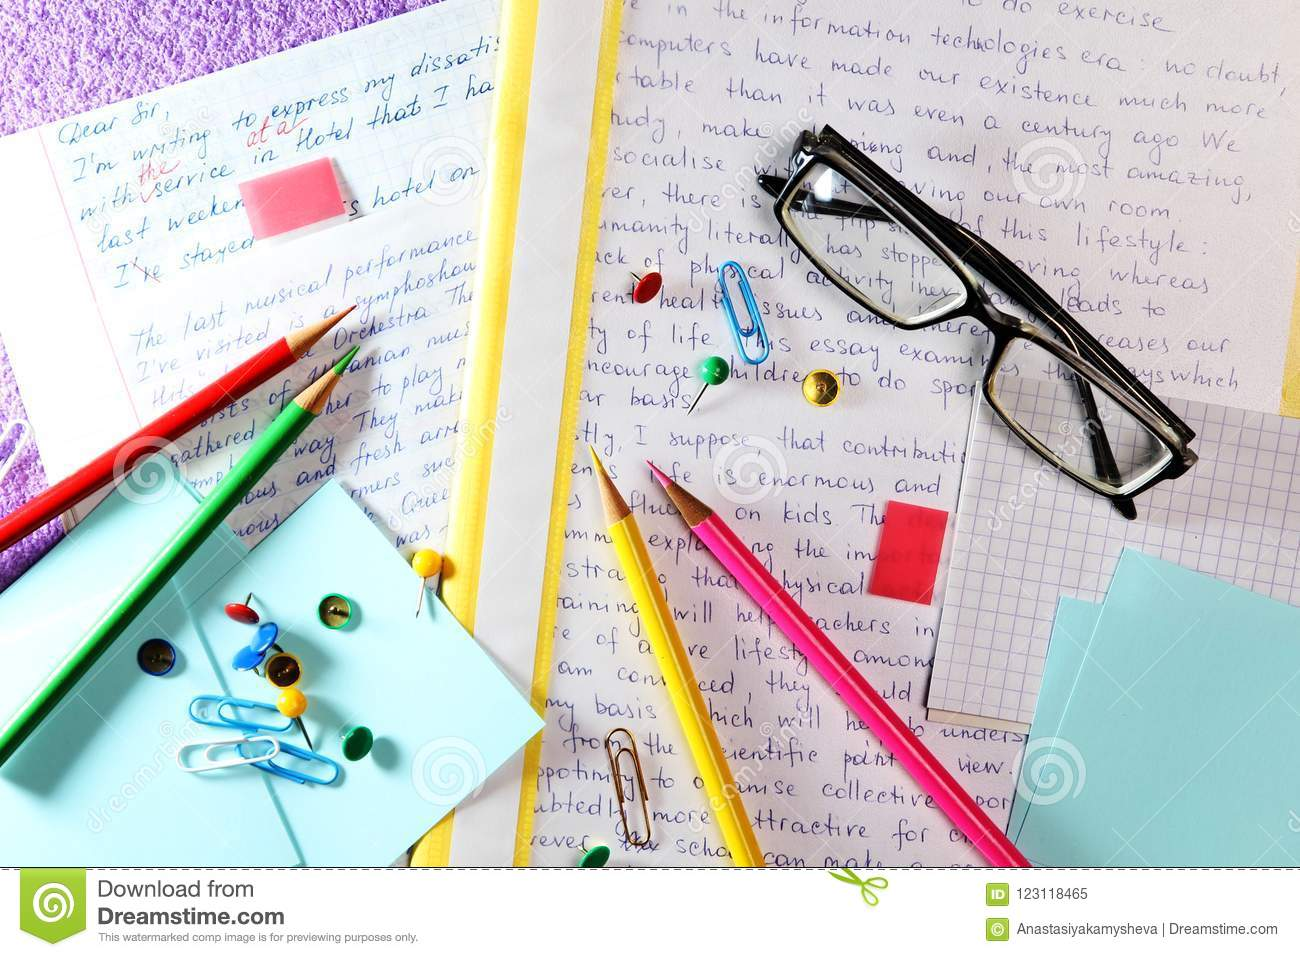 essays in english language ready for lessons stock image  image of  essays in english language ready for lessons